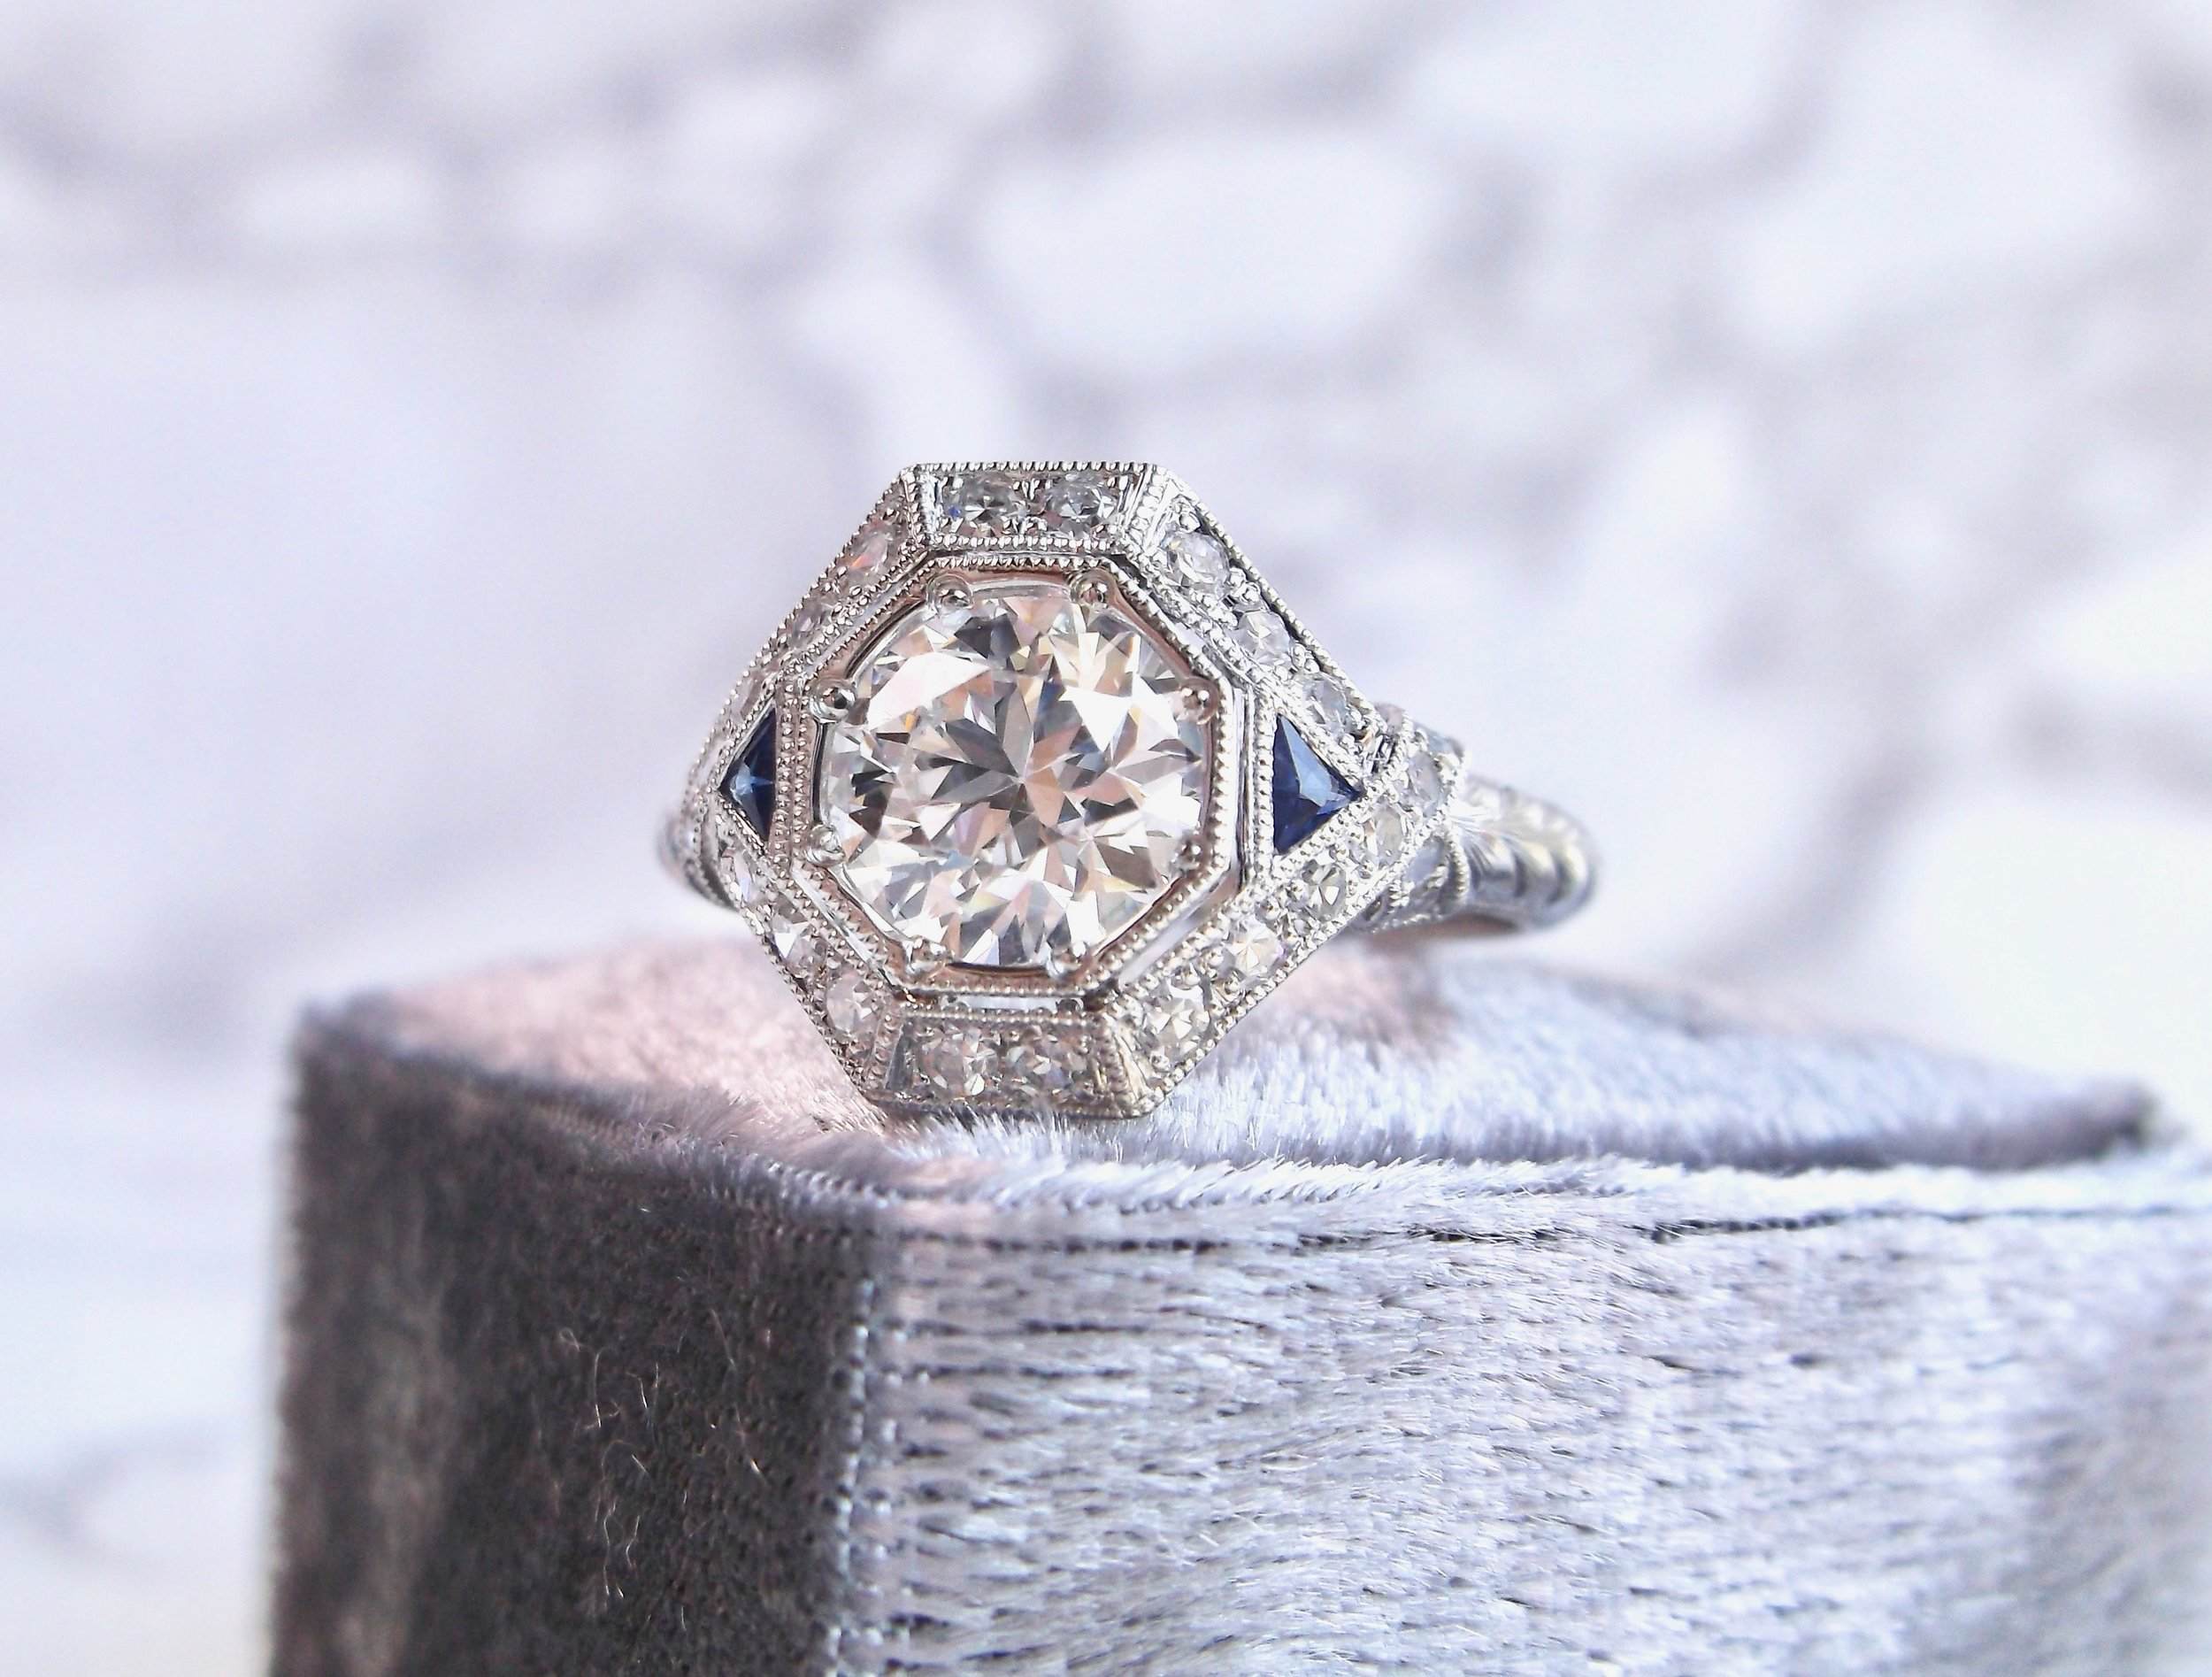 Phenomenal Old European cut diamond, sapphire and platinum ring.  The ring features a center 1.05 carat Old European cut diamond (VS1 clarity, F color), accented by 0.38 carats of single cut diamonds (VS1 clarity, G color) and 0.20 carats in sapphires with engraving details down the shank. Shop this stunner  HERE .